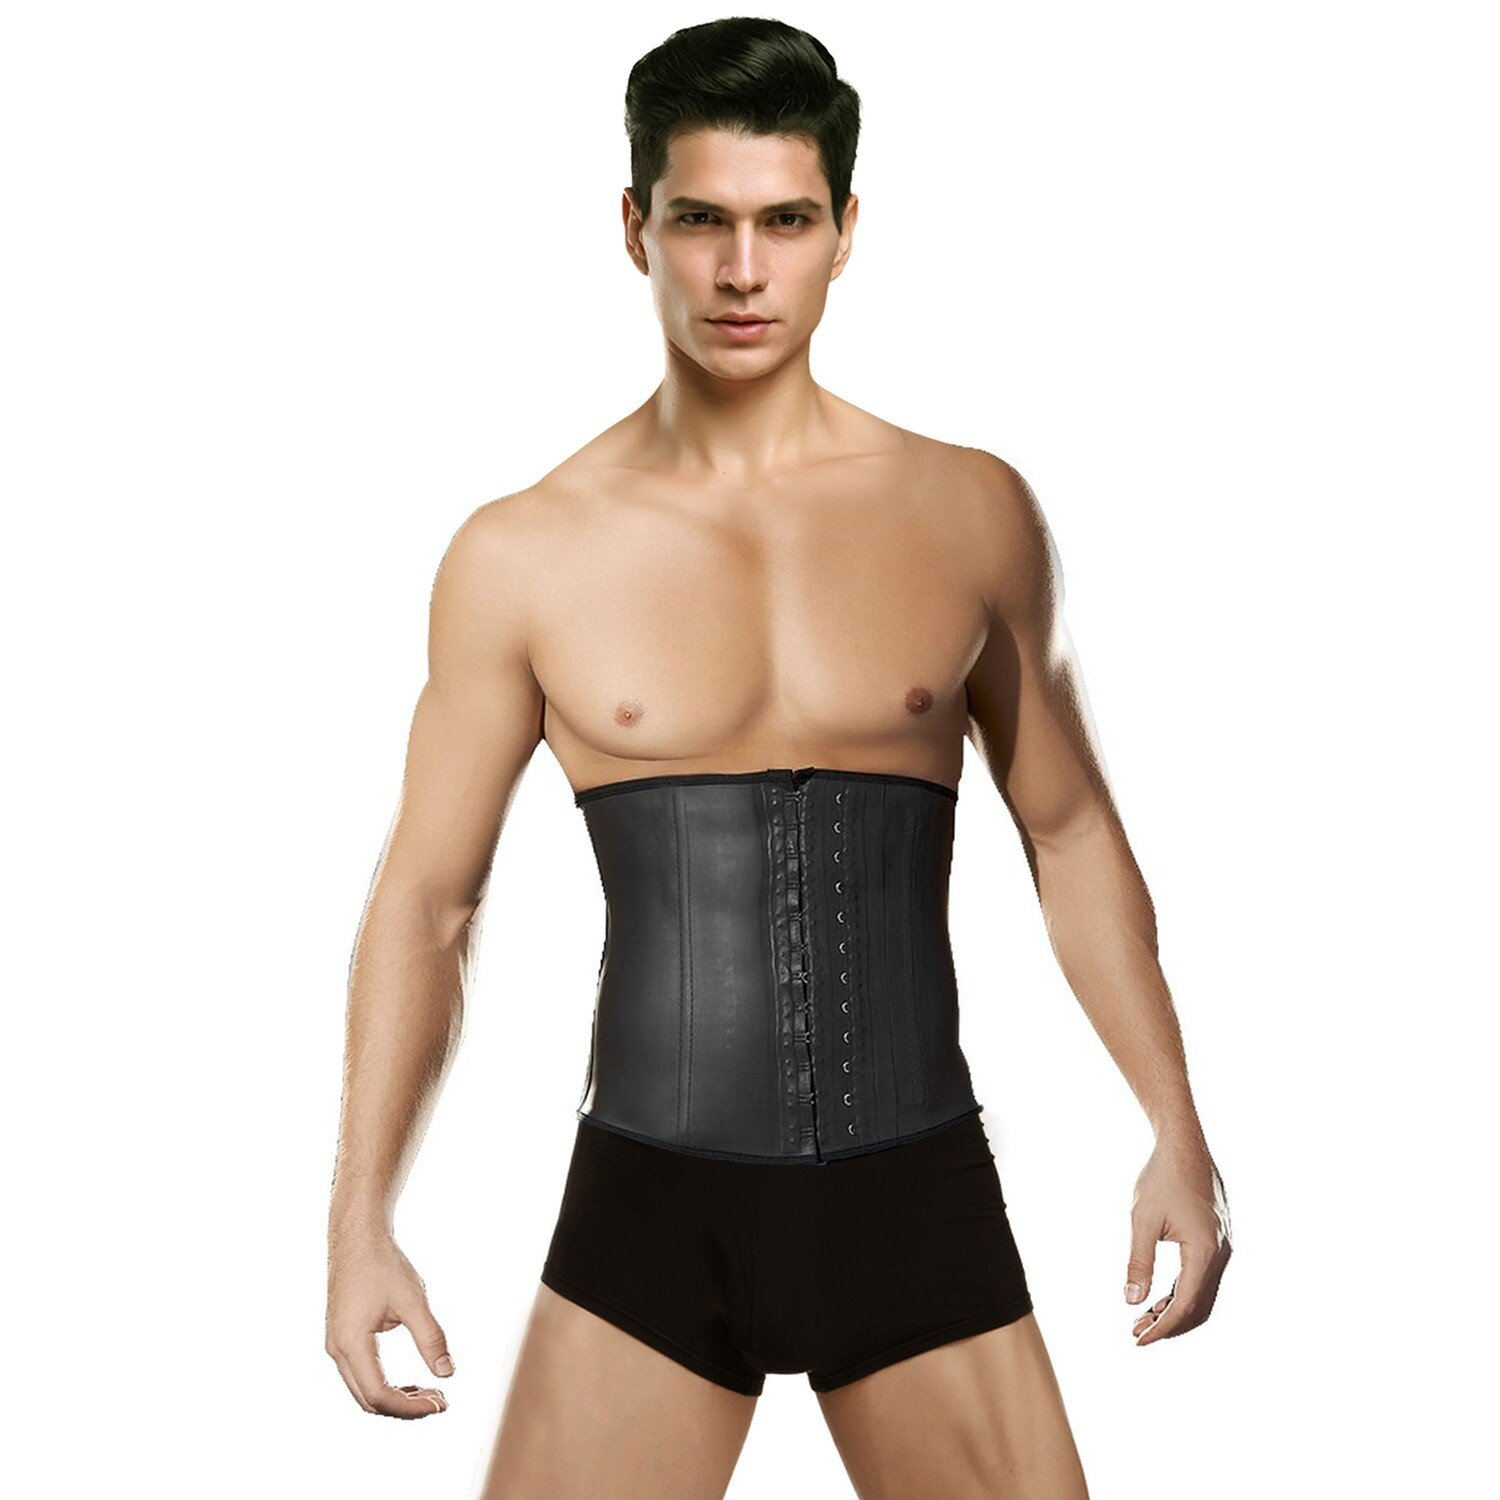 FeelinGirl Men's Tummy Control Steel Boned Waist Trainer Workout Sport Shapewear LB4533